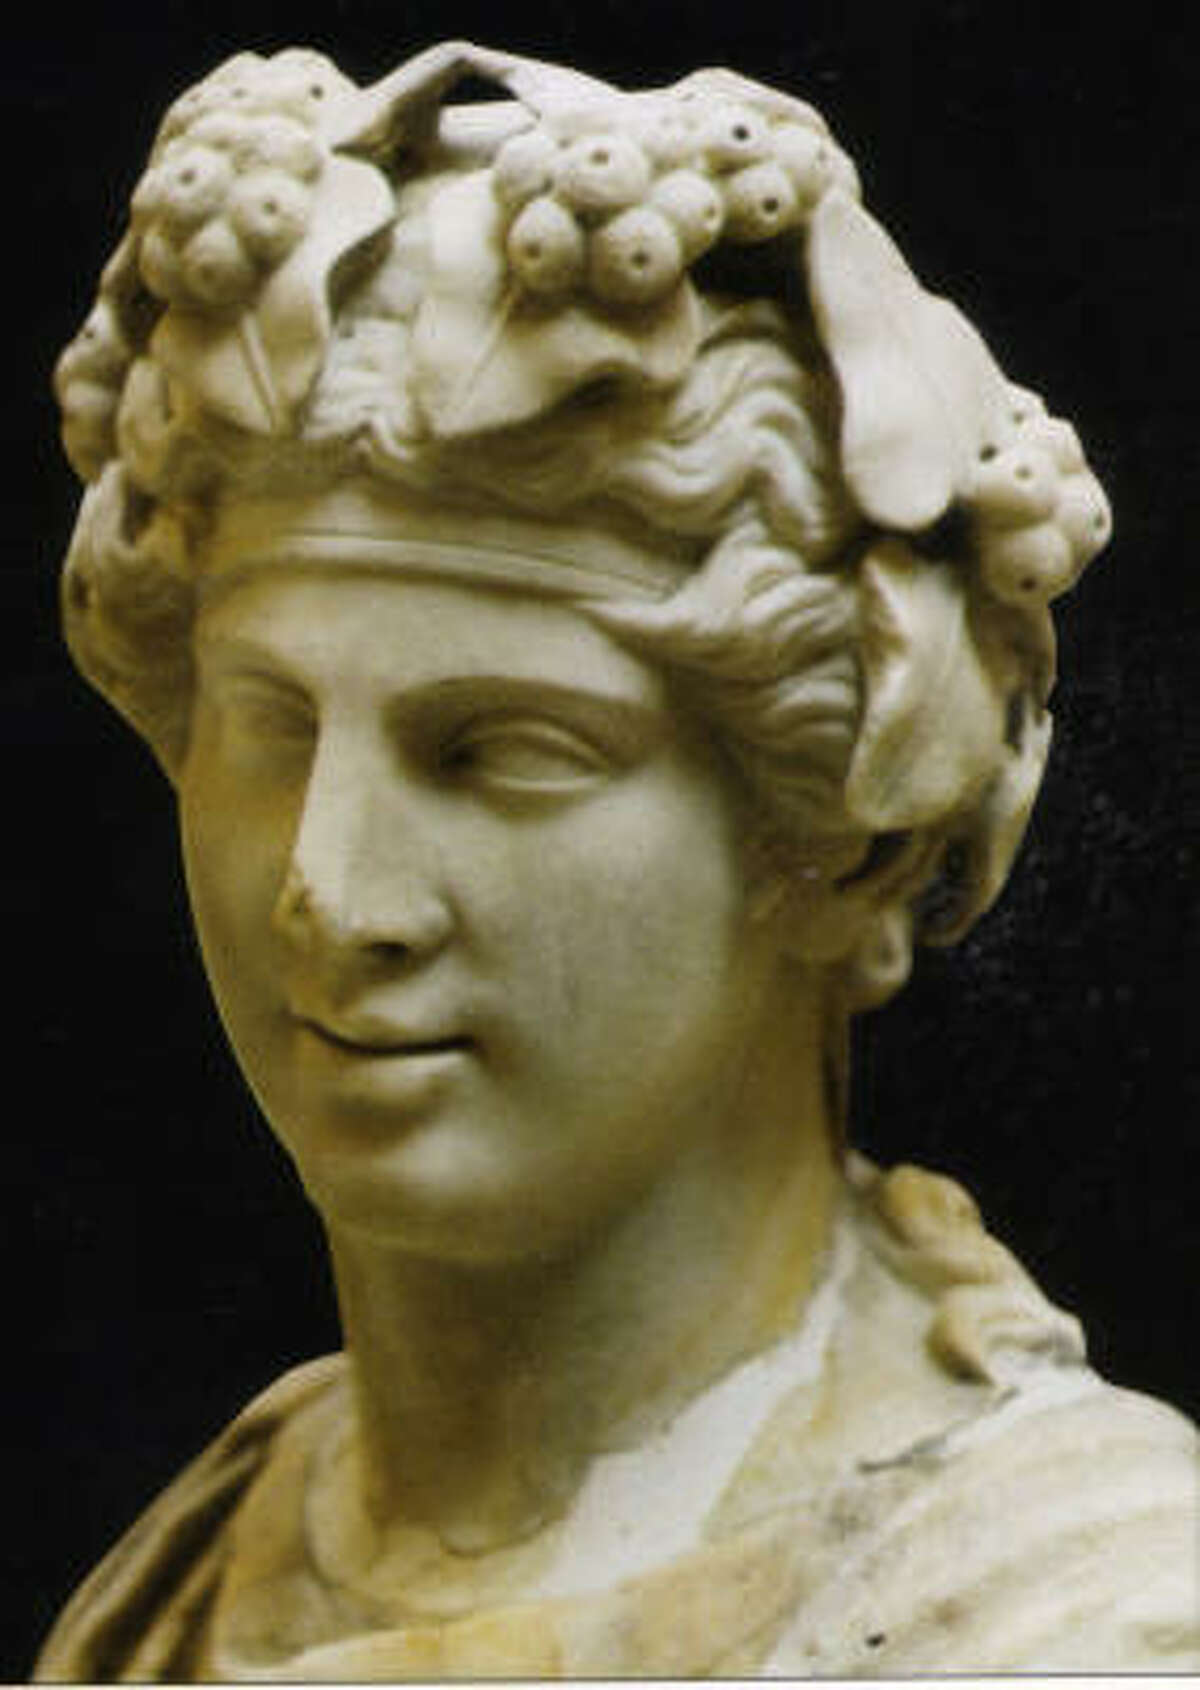 Imperial Rome's gods and goddesses were a blend of religious influences, and many were introduced from the Greek colonies of southern Italy. Bacchus, the god of wine, was one of these.